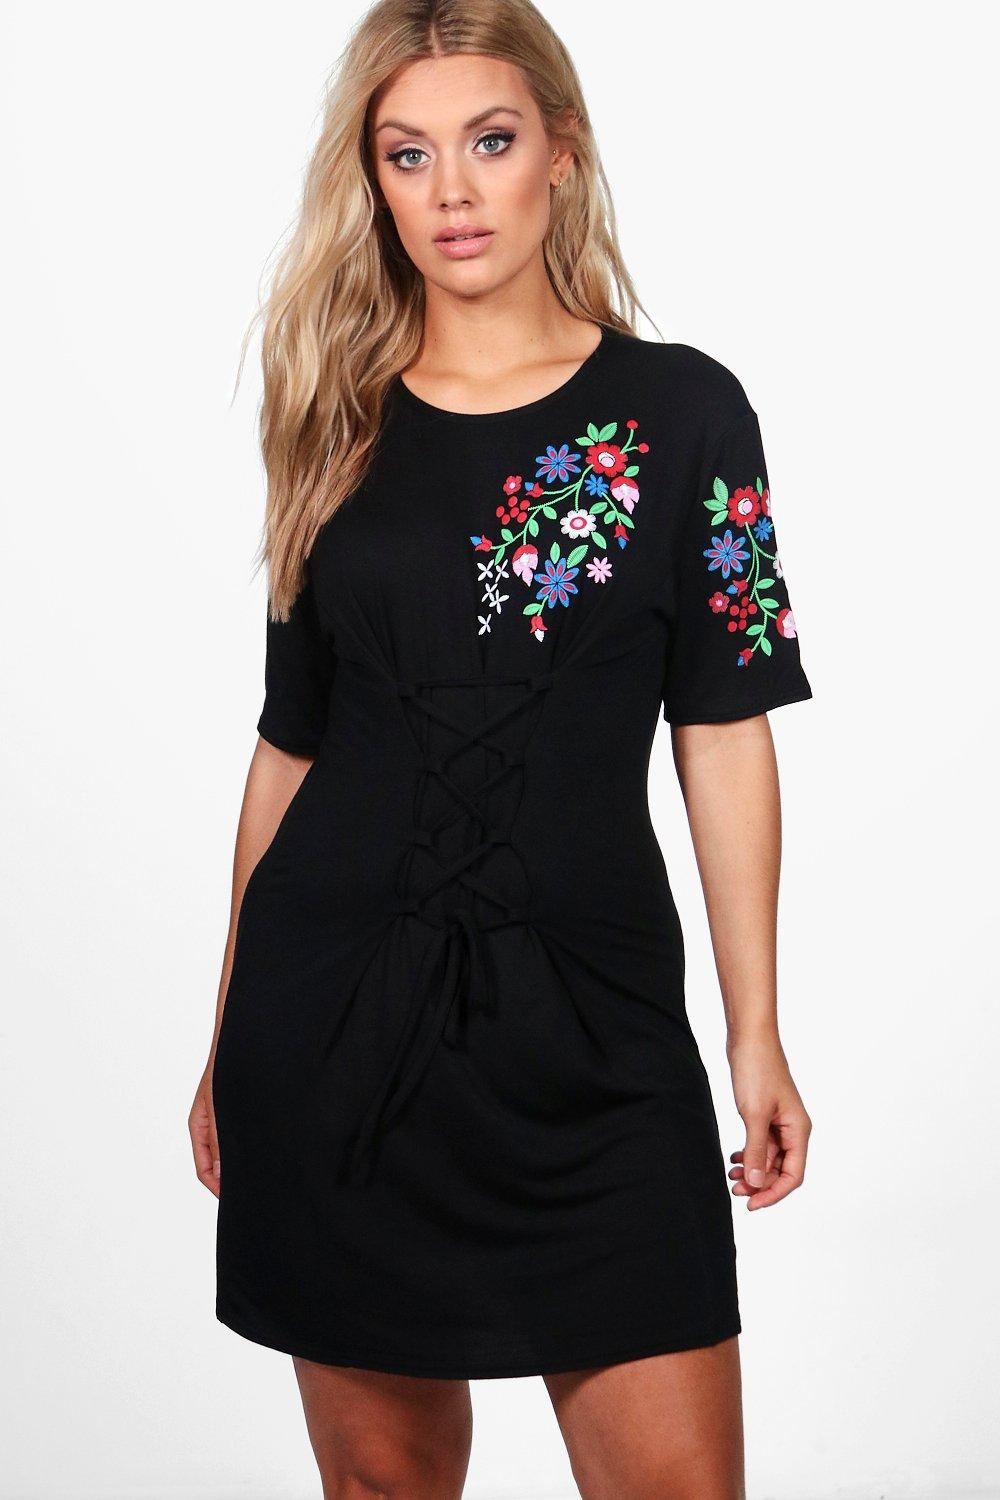 Black t shirt dress ebay - Boohoo Womens Plus Emily Embroidered Corset Detail T